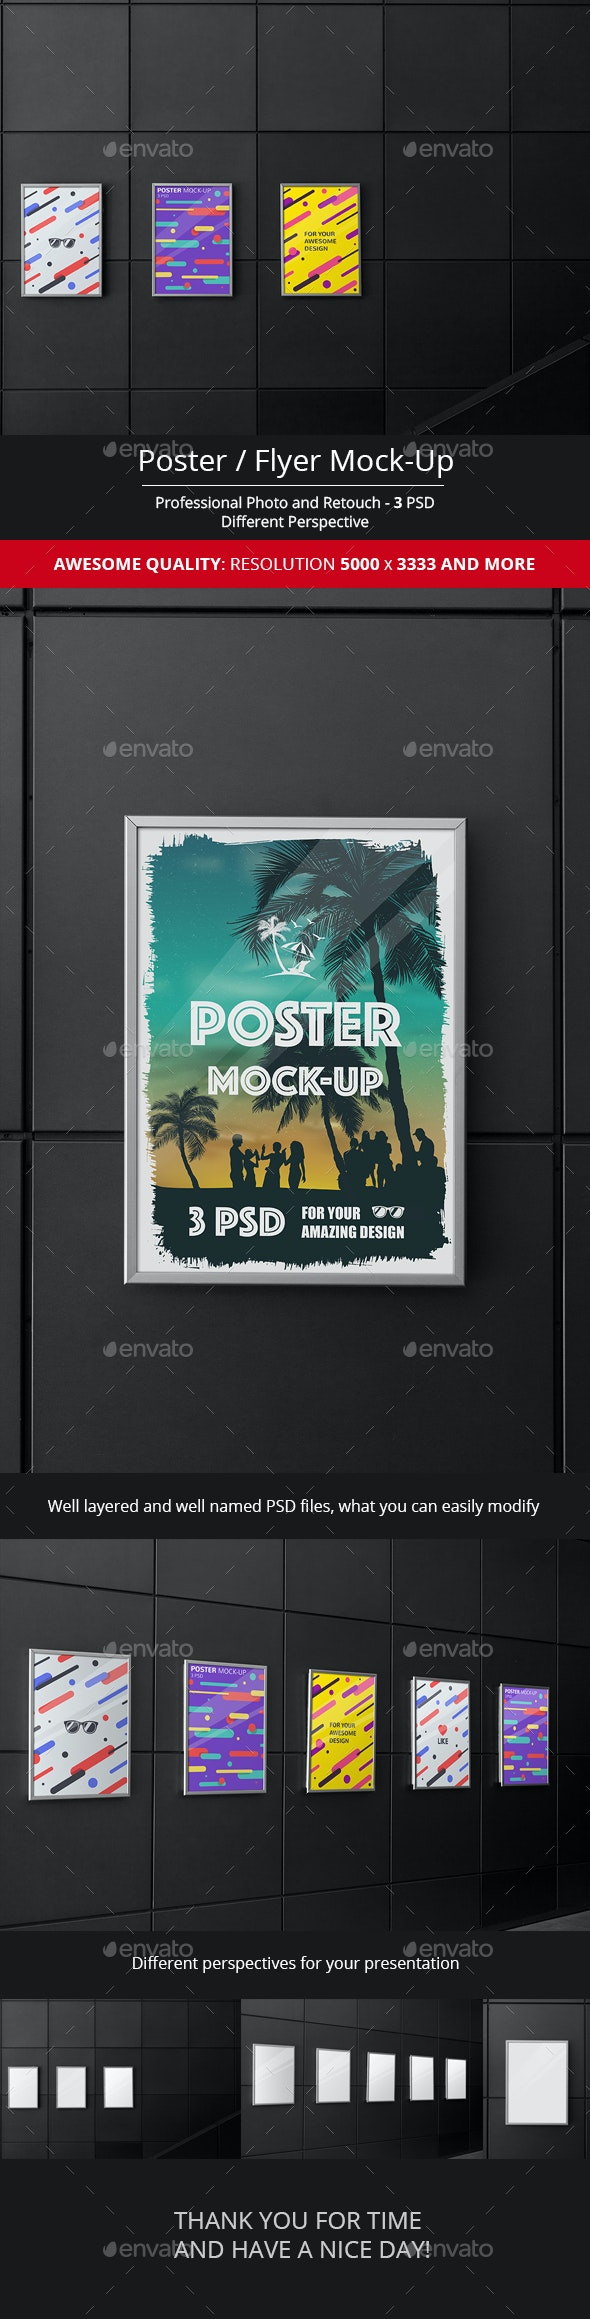 Poster / Flyer Mock-Up - Product Mock-Ups Graphics